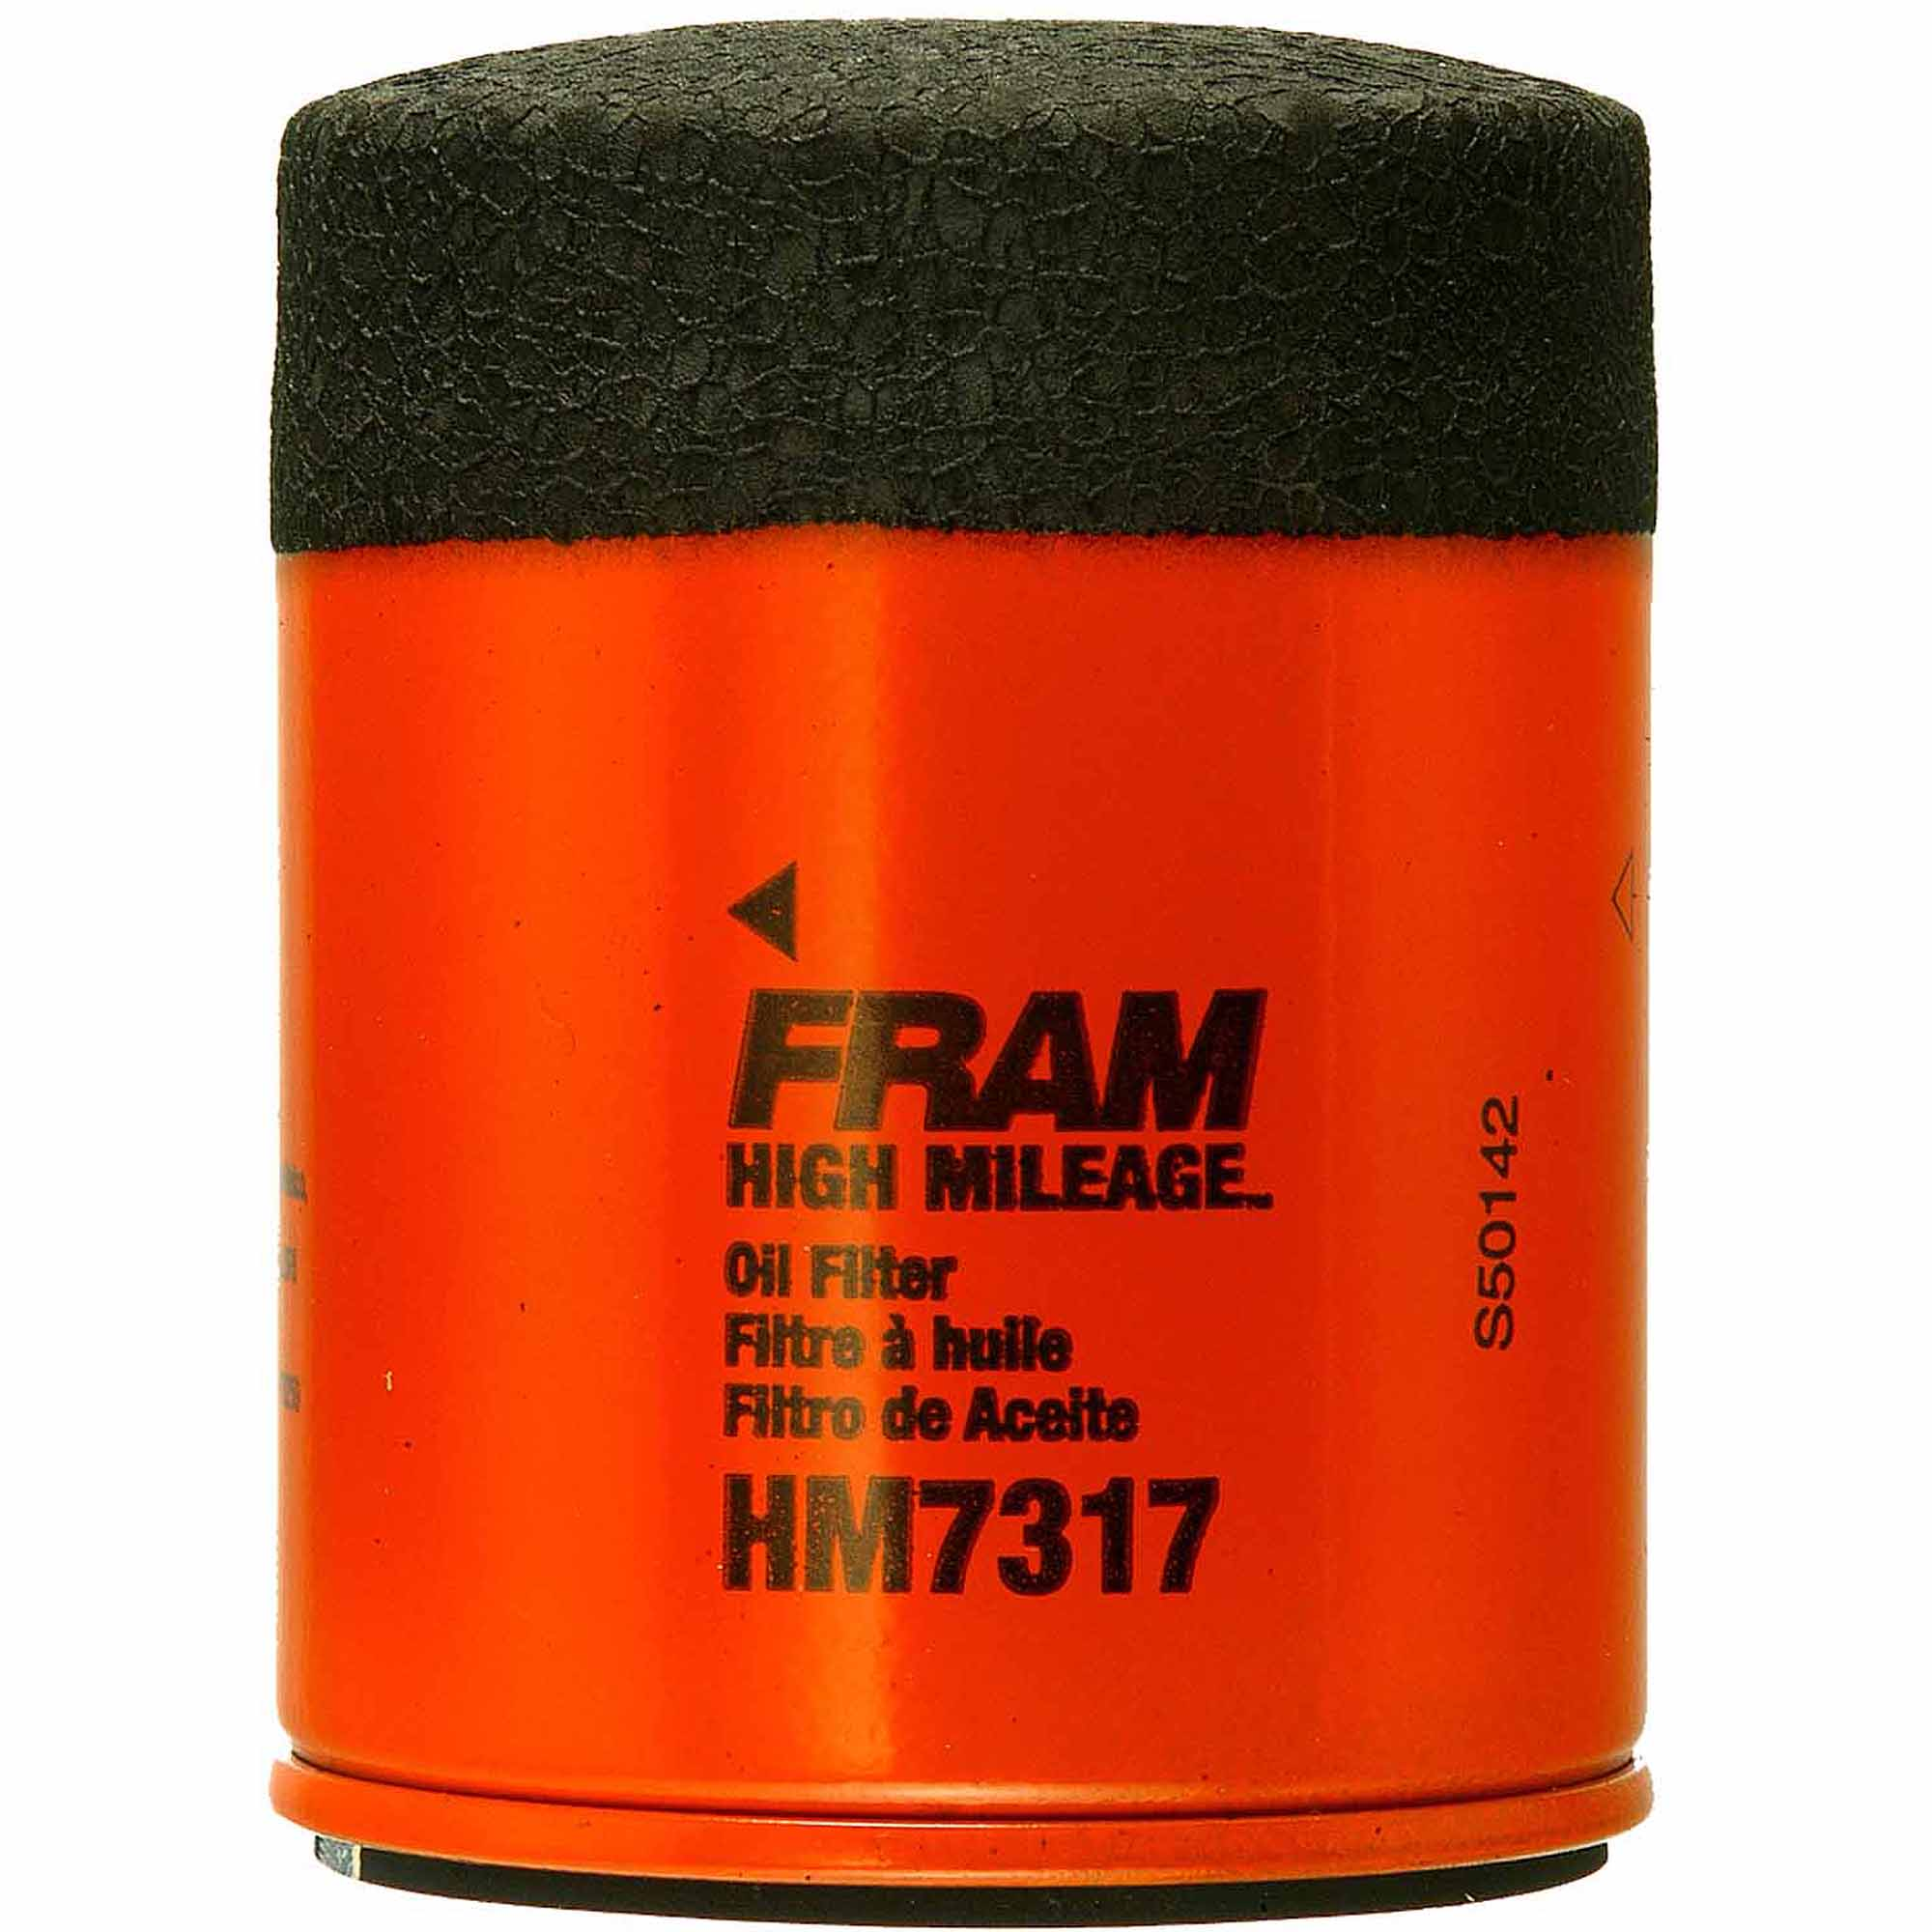 FRAM High Mileage Oil Filter, HM7317